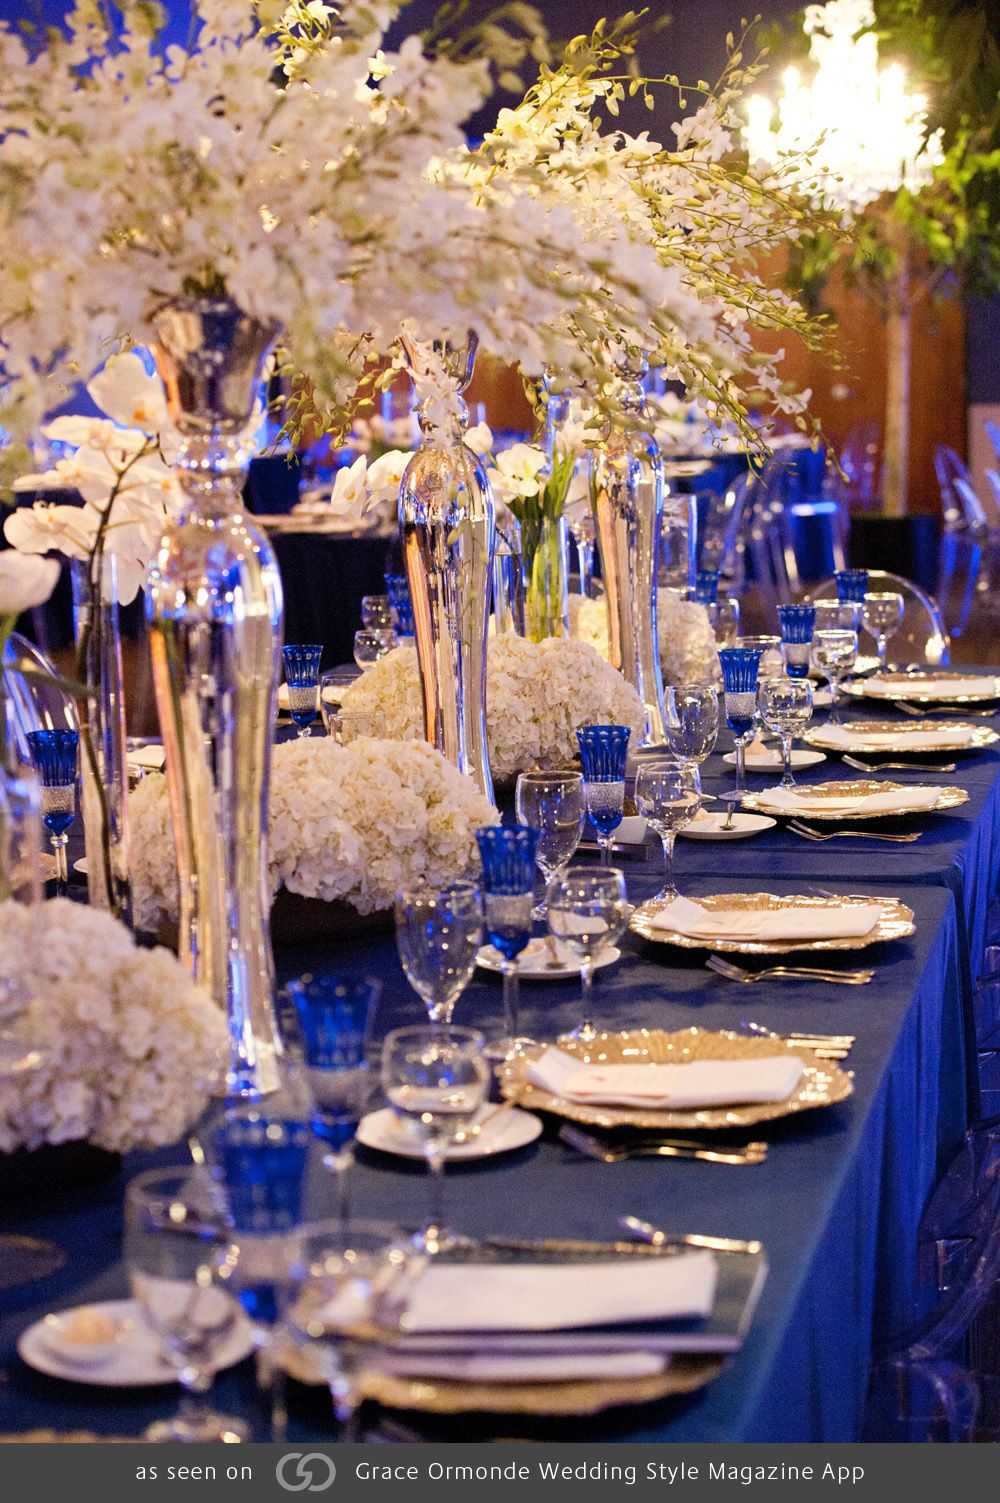 Royal Blue Tables With Pops Of Gold And Silver Featuring Phalaenopsis And  Dendrobium Orchids, Hydrangea